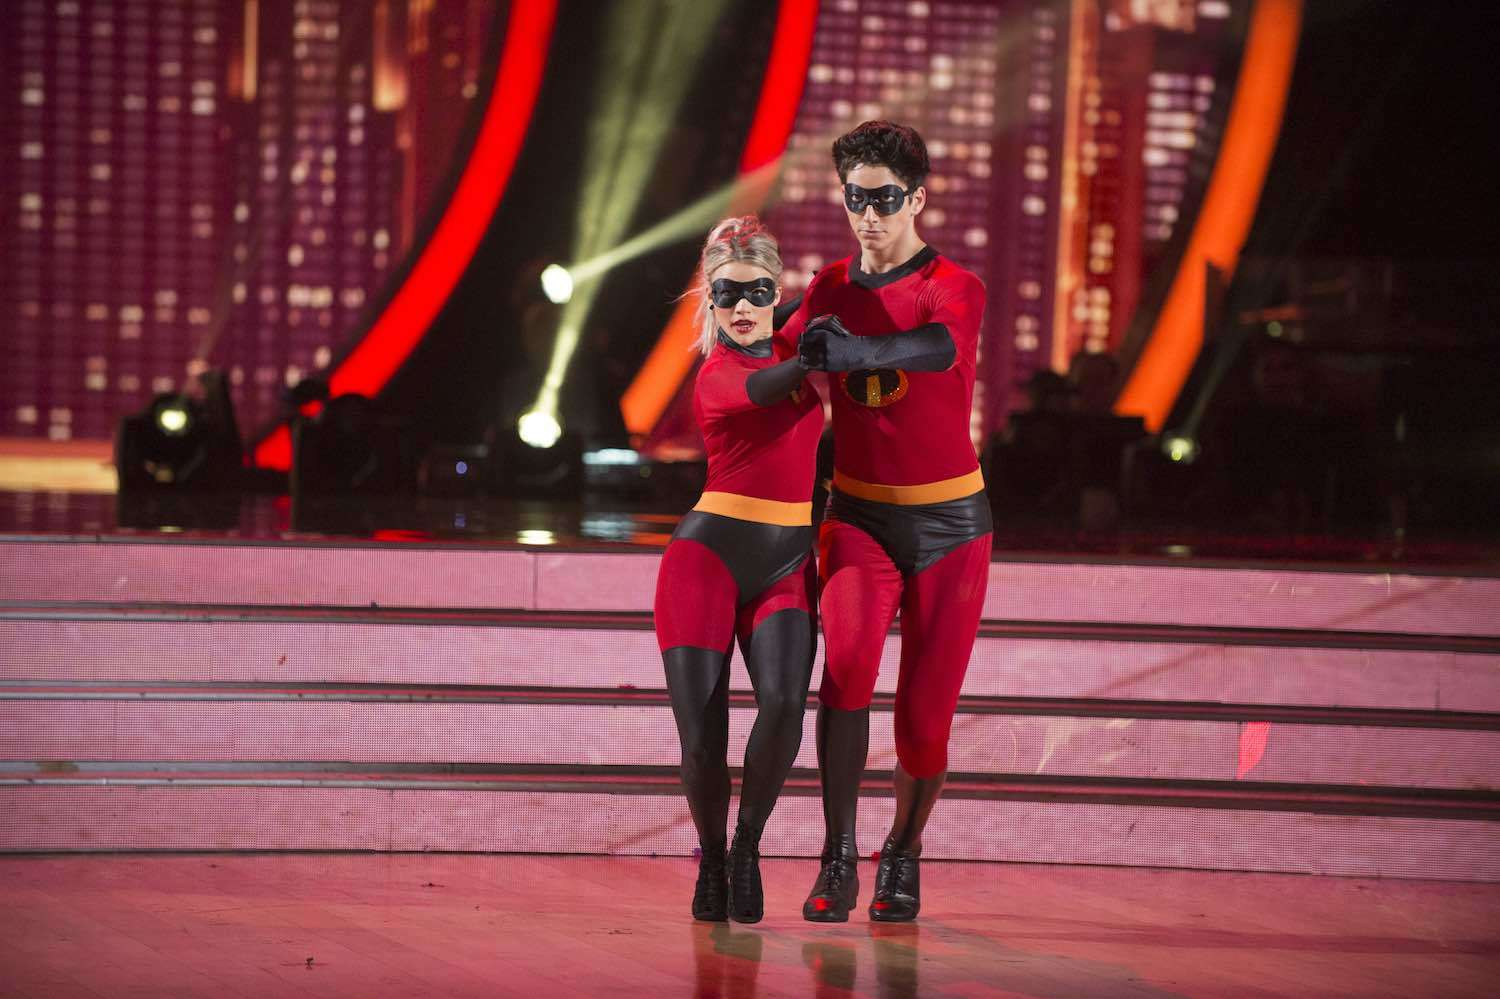 Milo Manheim and Witney Carson dancing in matching Incredibles-inspired super suits